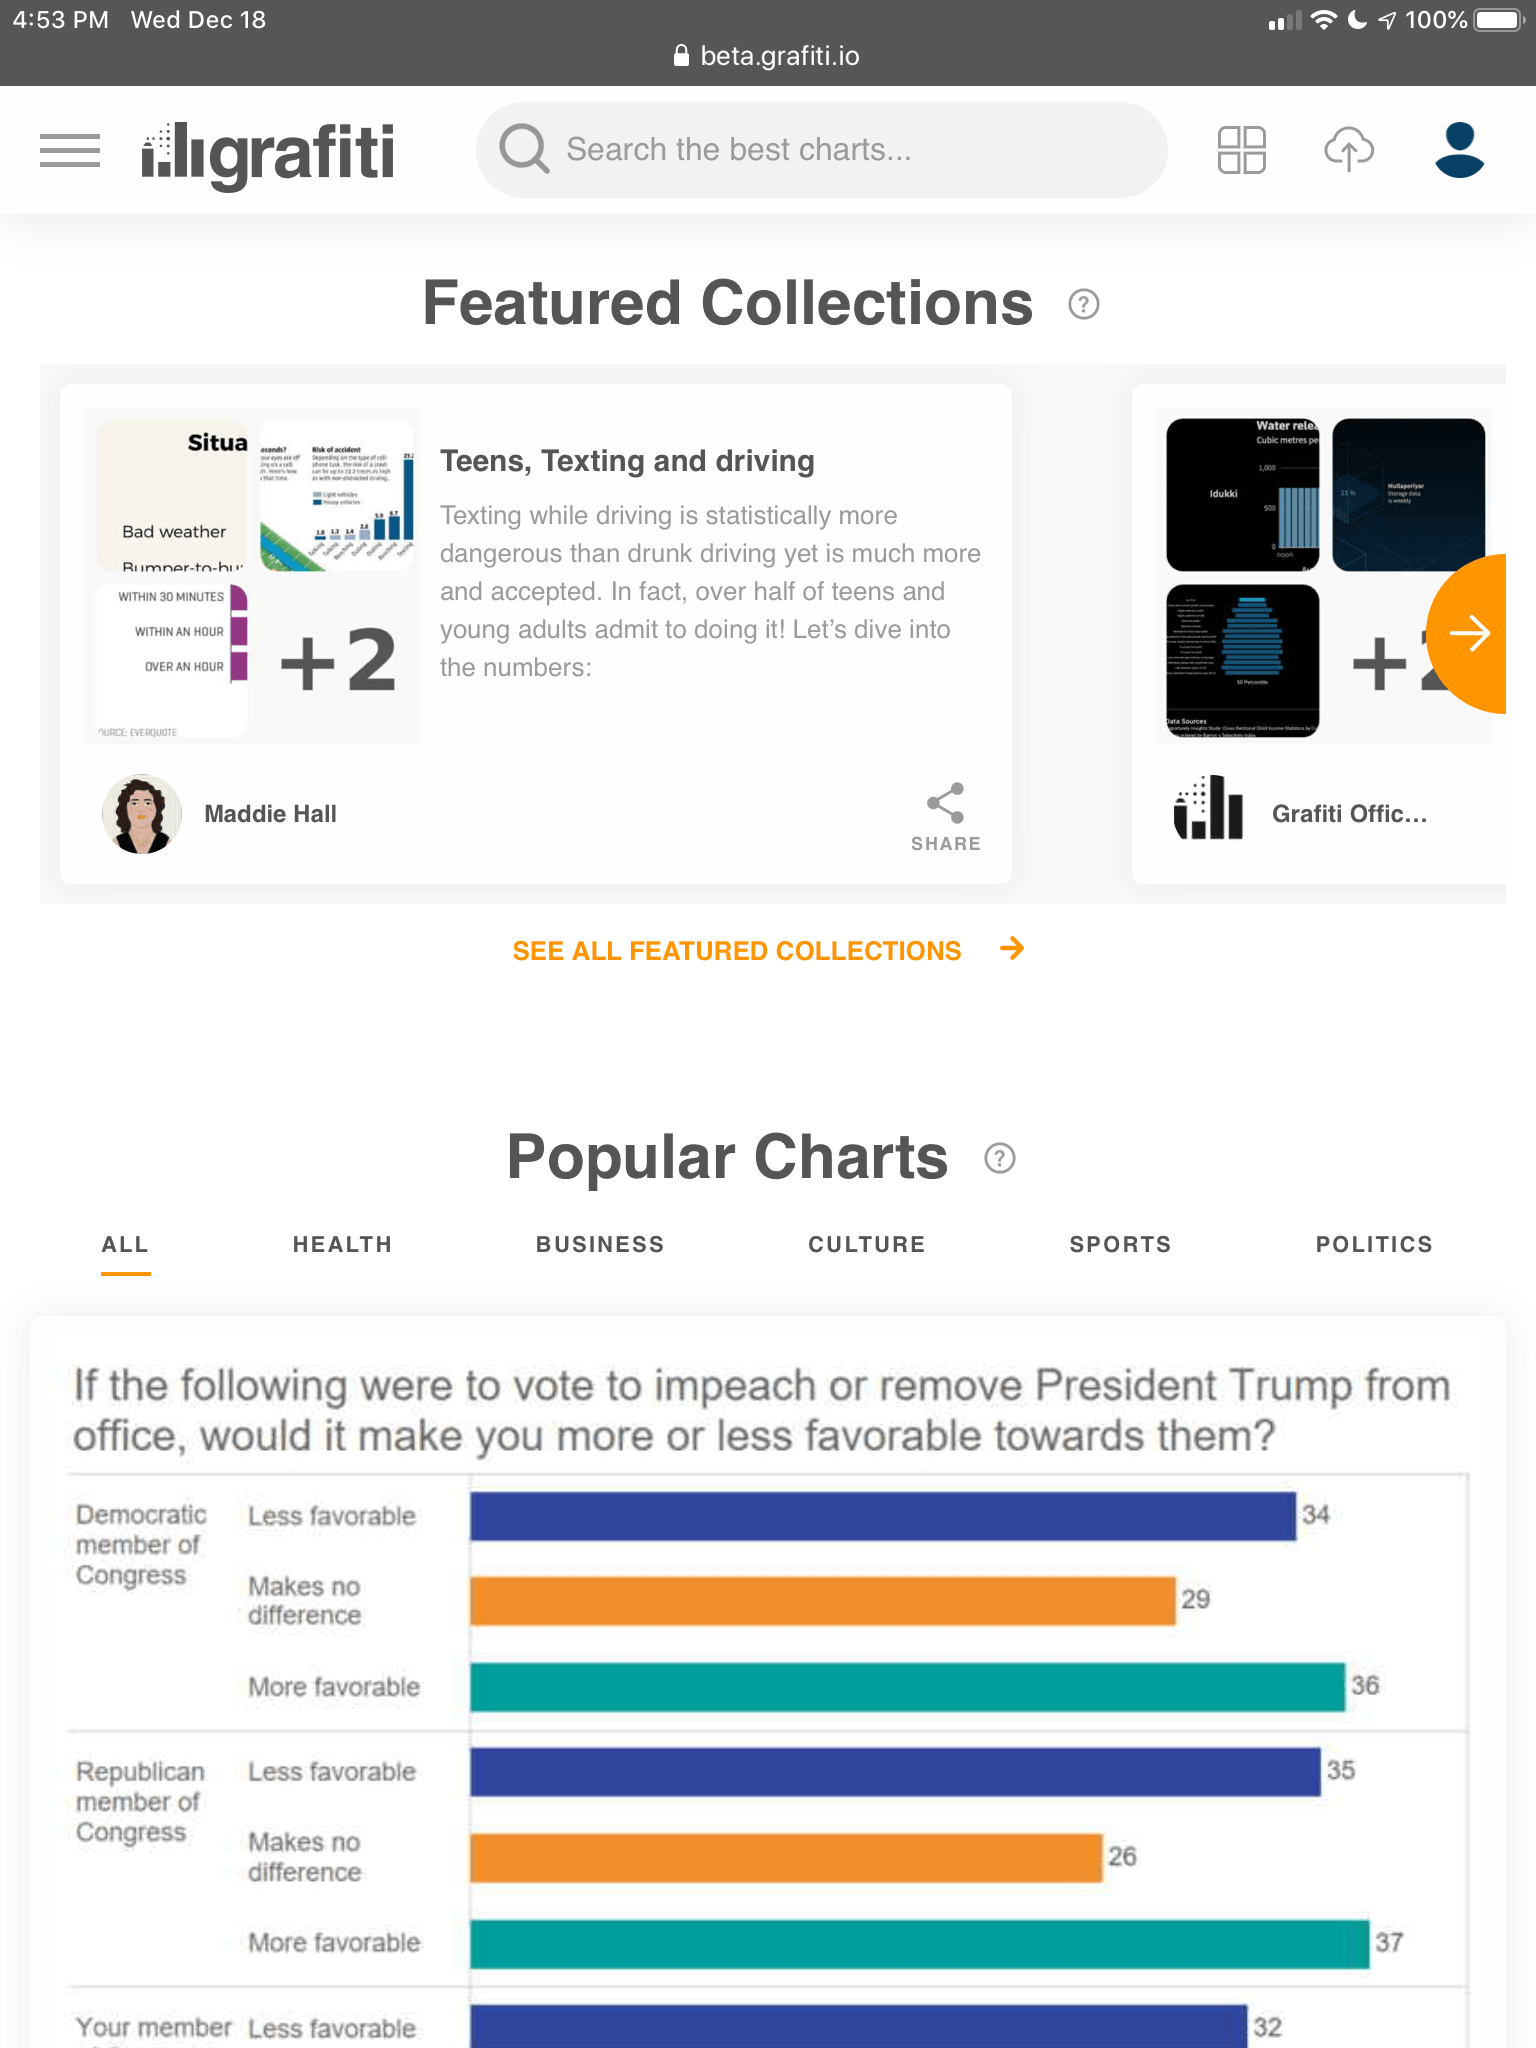 Grafiti, A Search Engine For Charts, Raises Nearly $1.6M In Pre-Seed Funding